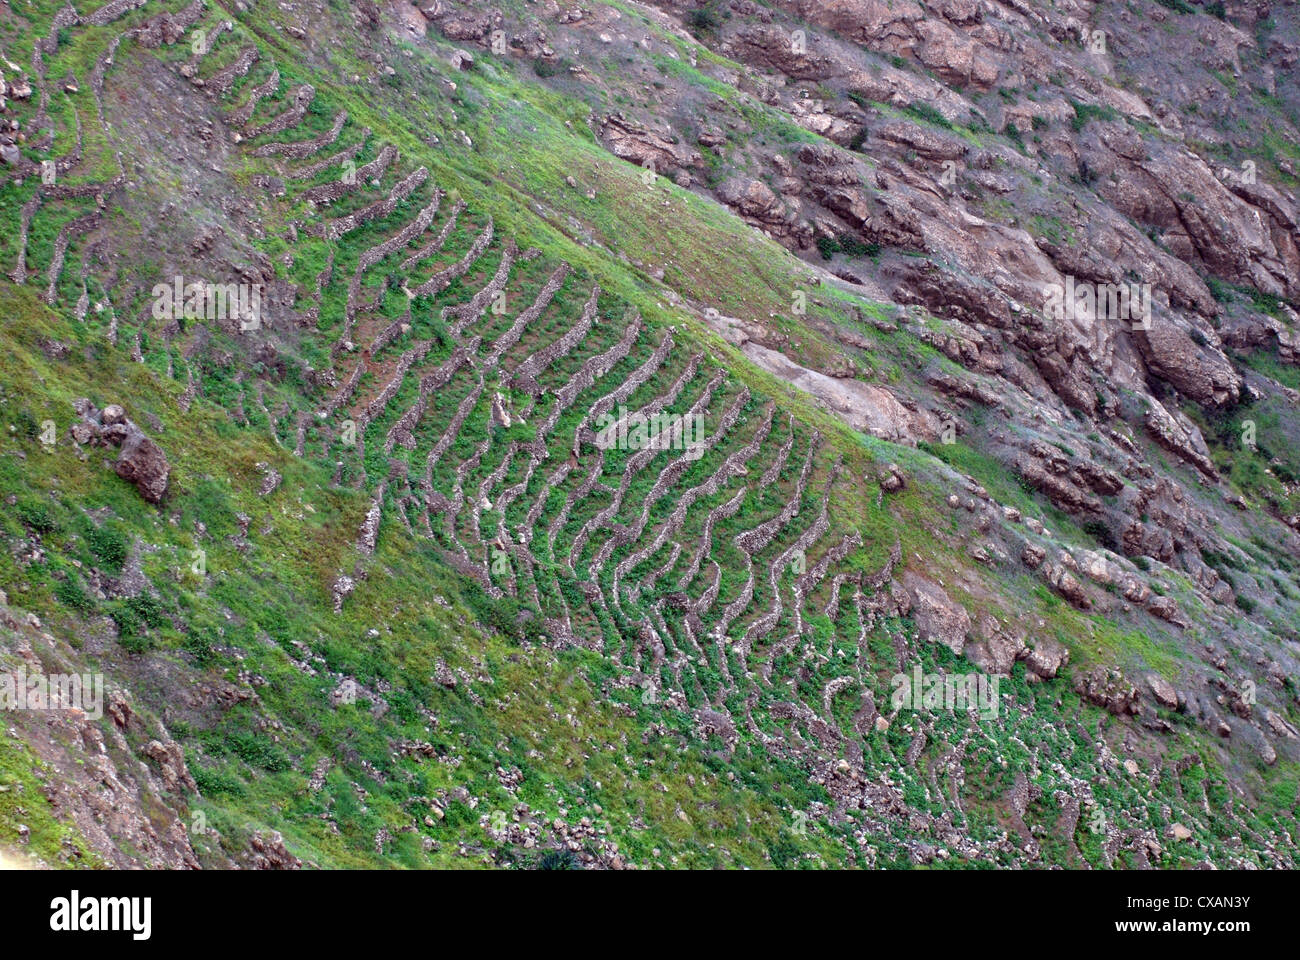 Terrace farming on steep rugged and exposed mountain for Terrace farming model